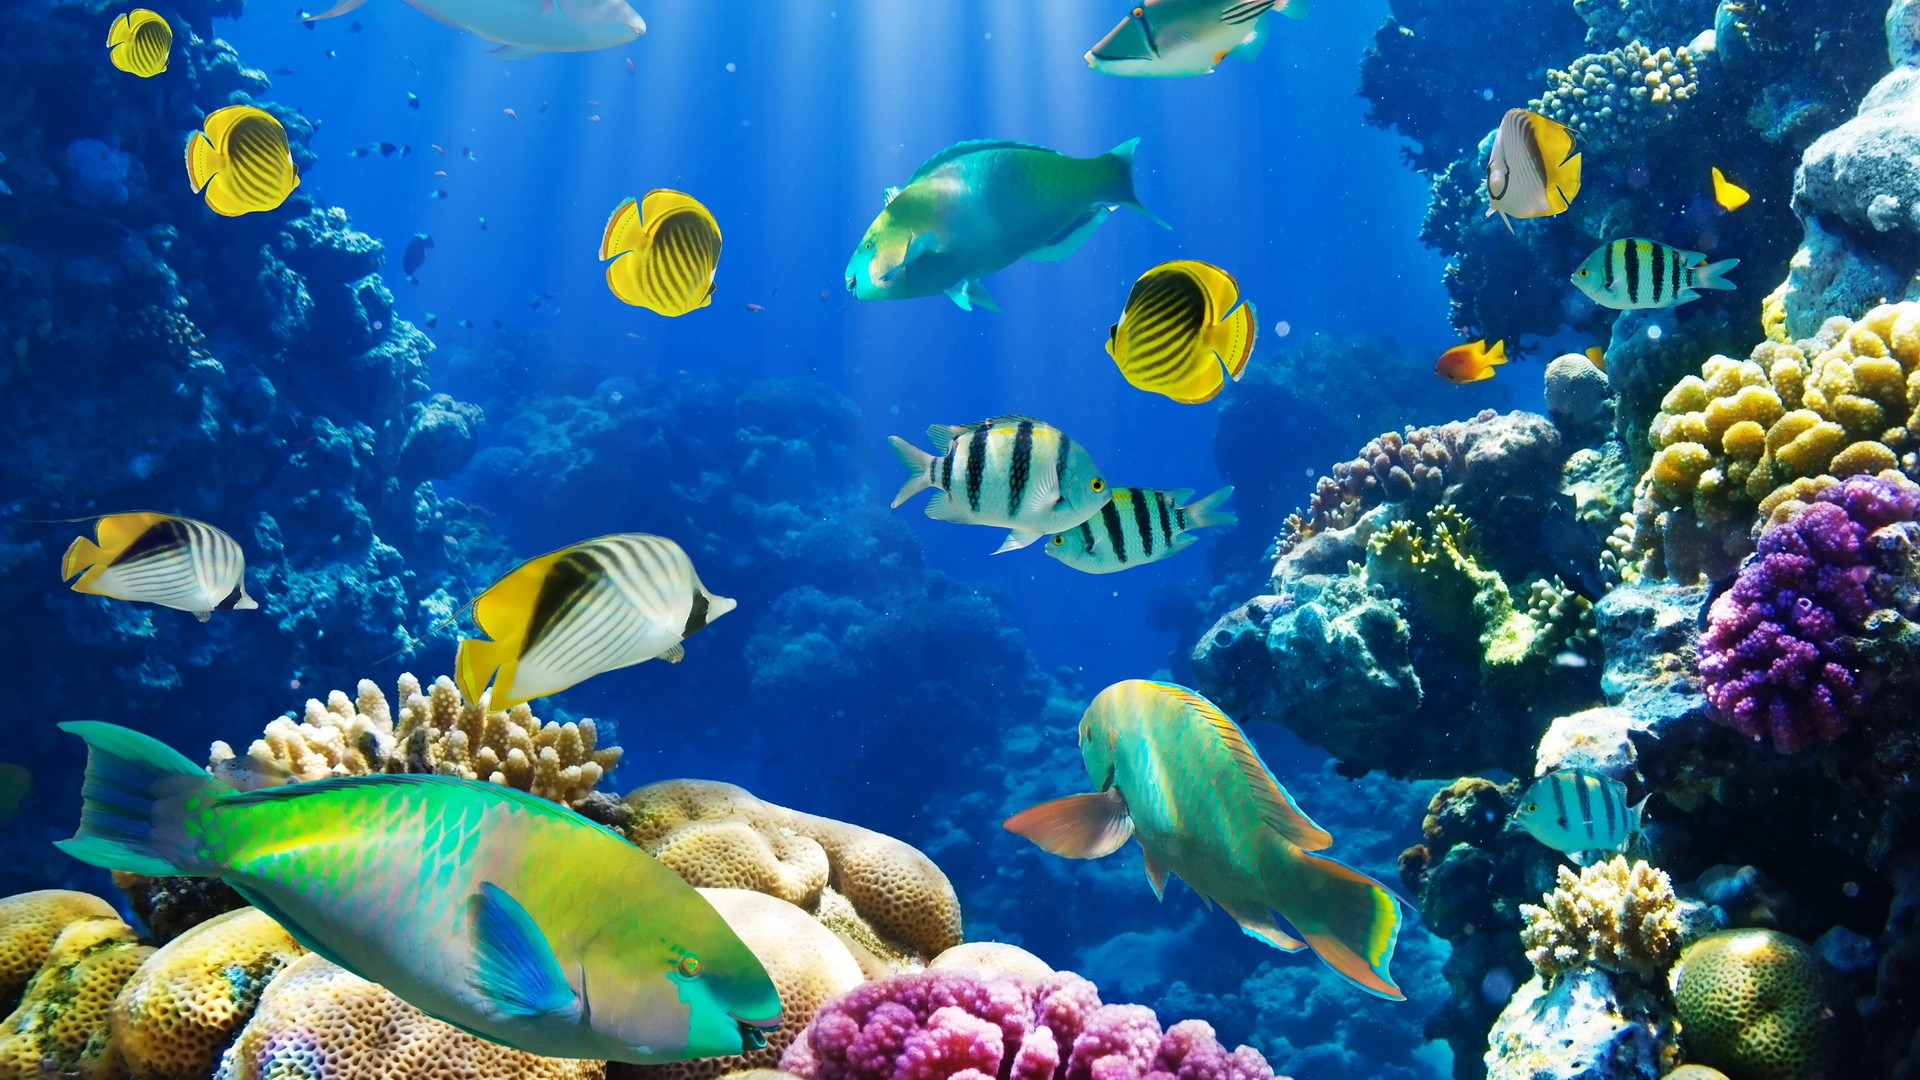 Live Fish Backgrounds wallpaper Live Fish Backgrounds hd wallpaper 1920x1080